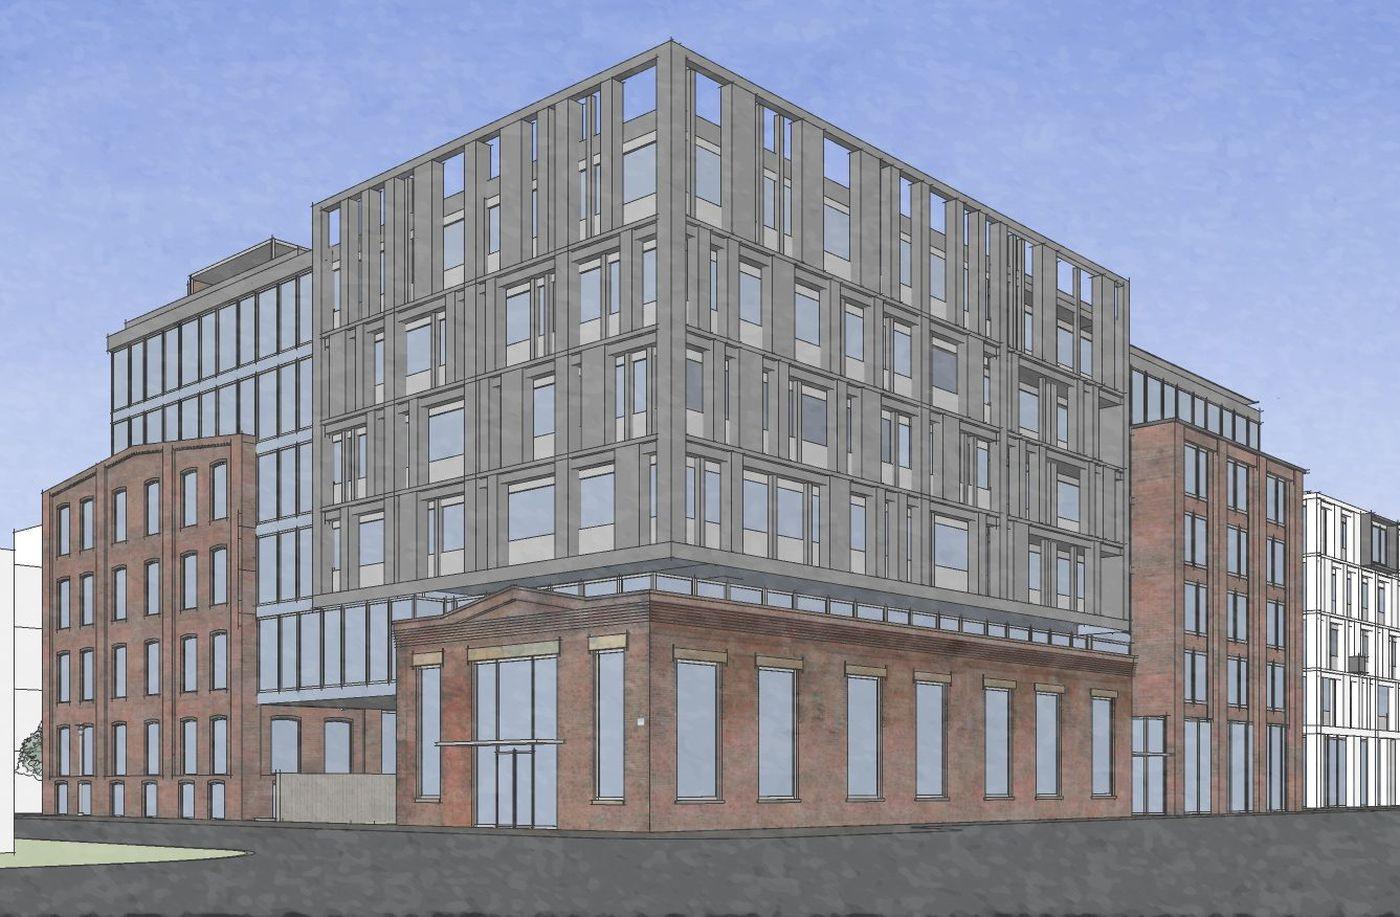 Artist S Rendering Of Apartment Building Planned At The Former Frankford Chocolate Factory Site As Seen